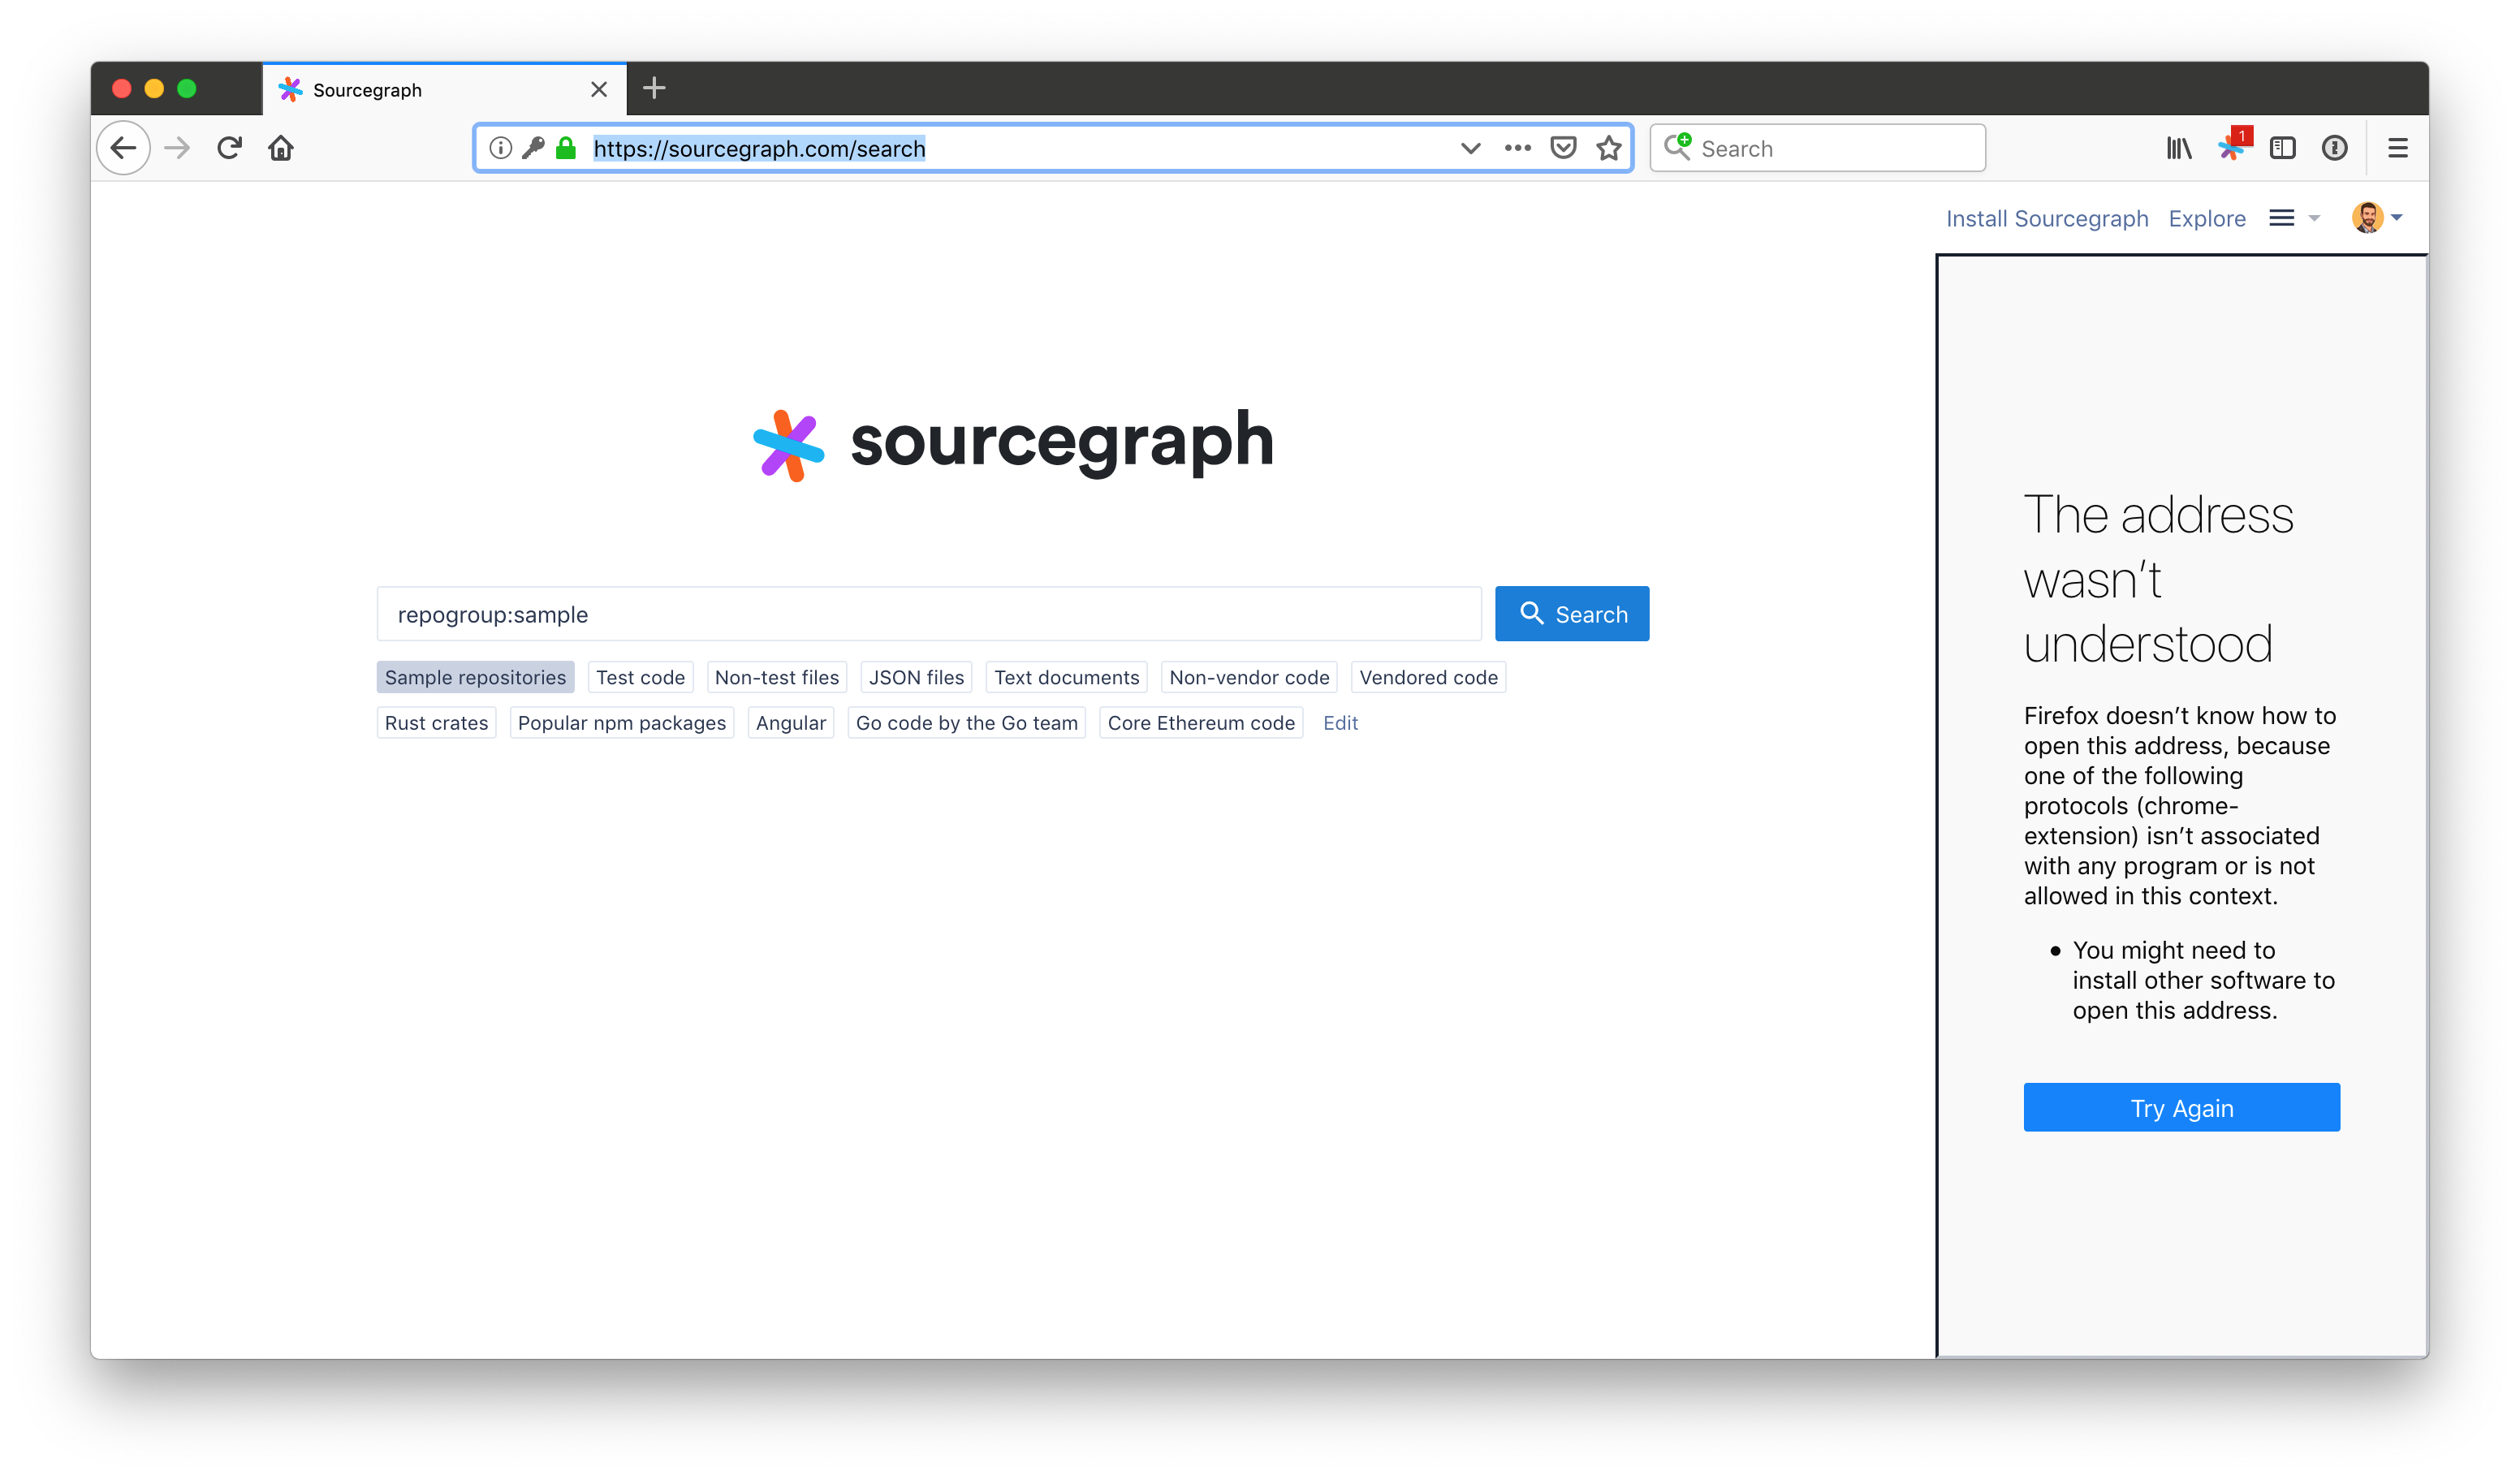 Empty iframe displayed on some pages · Issue #1118 · sourcegraph